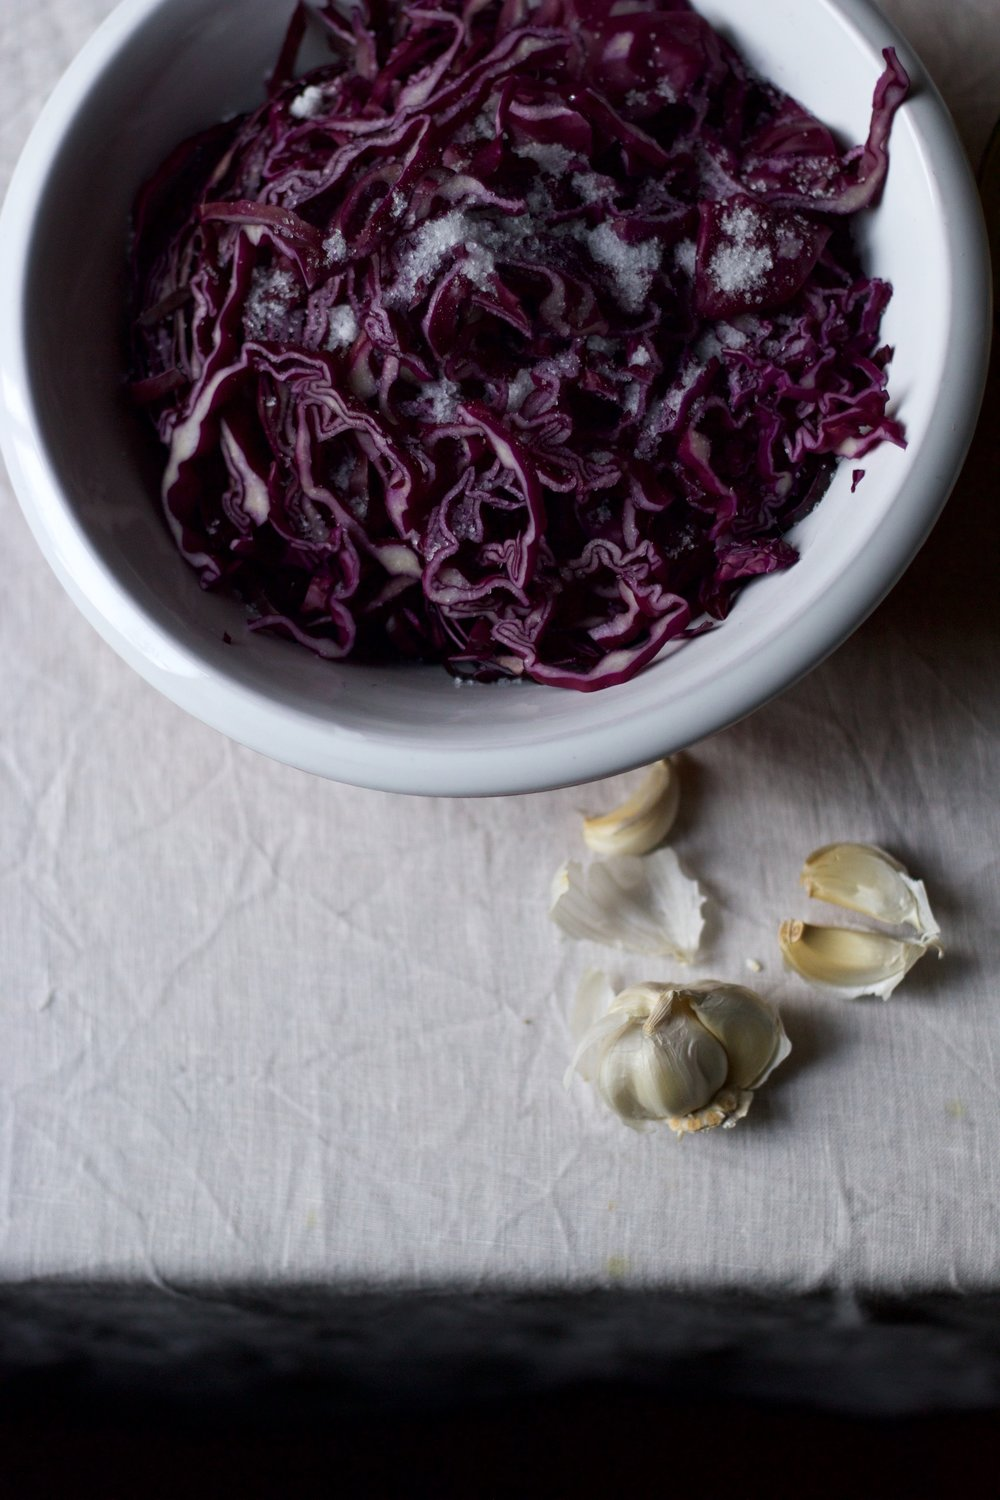 Sauerkraut recipe by Jette Virdi, Food stylist based in london, Portugal and Ireland